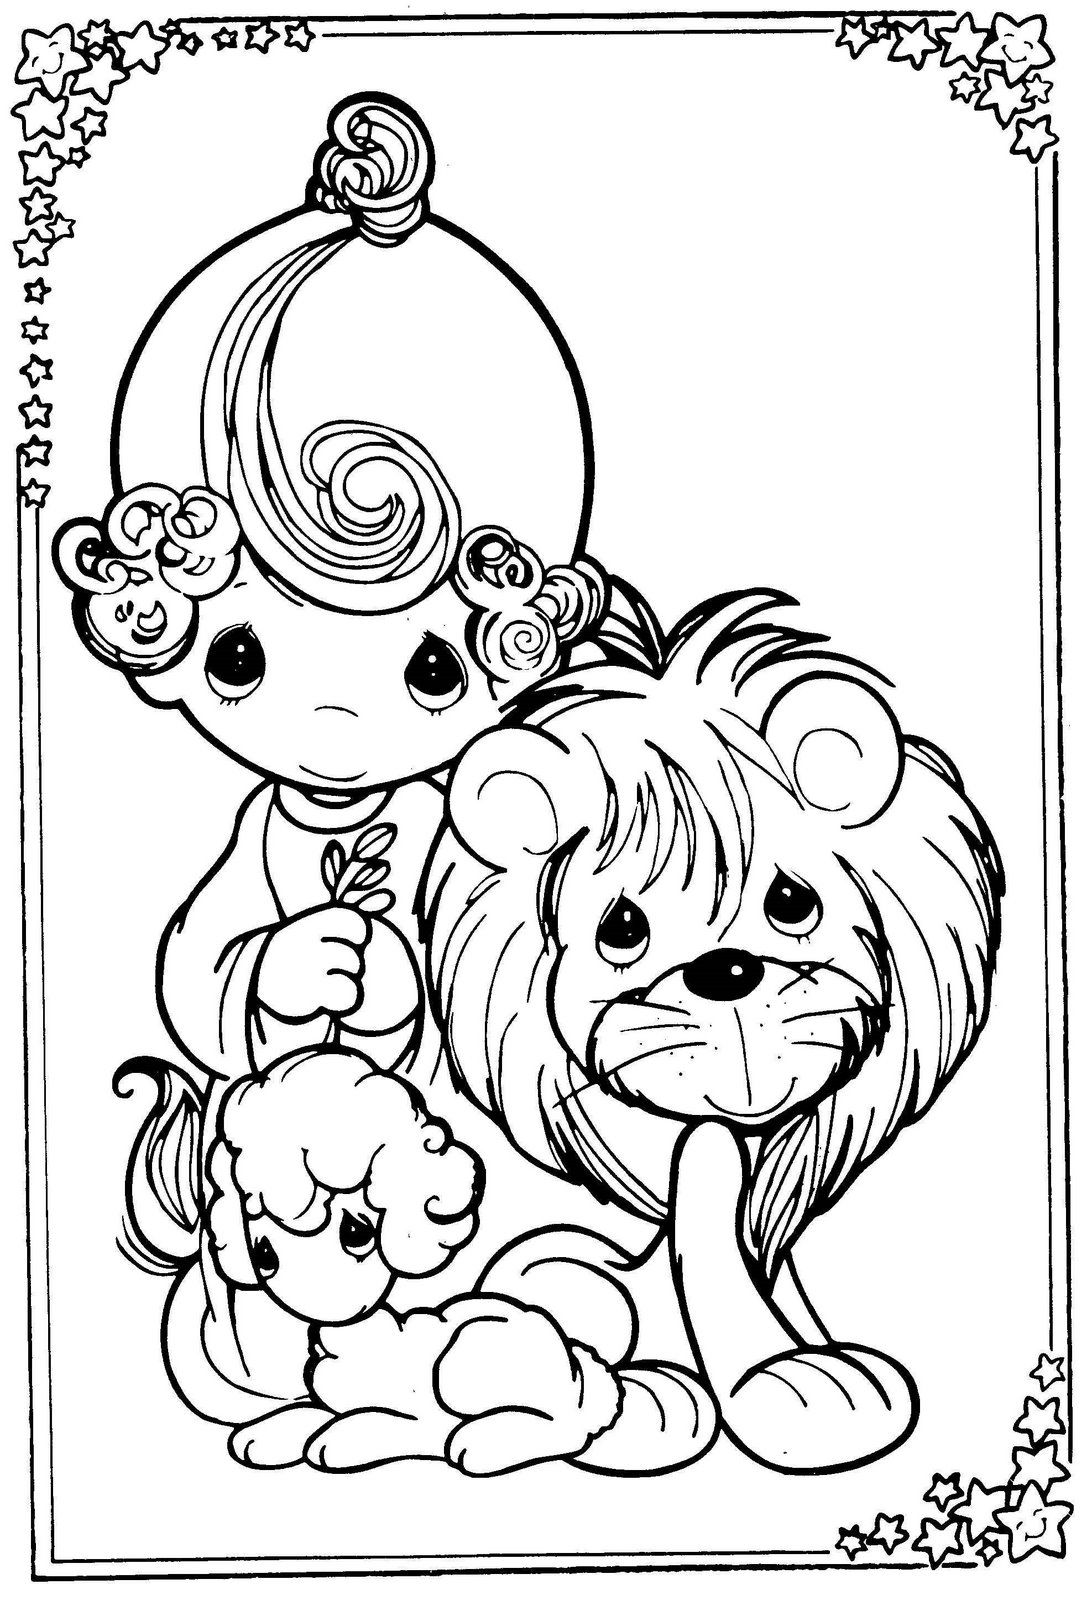 Tattoo Idea The Lion And Lamb Represent My Children